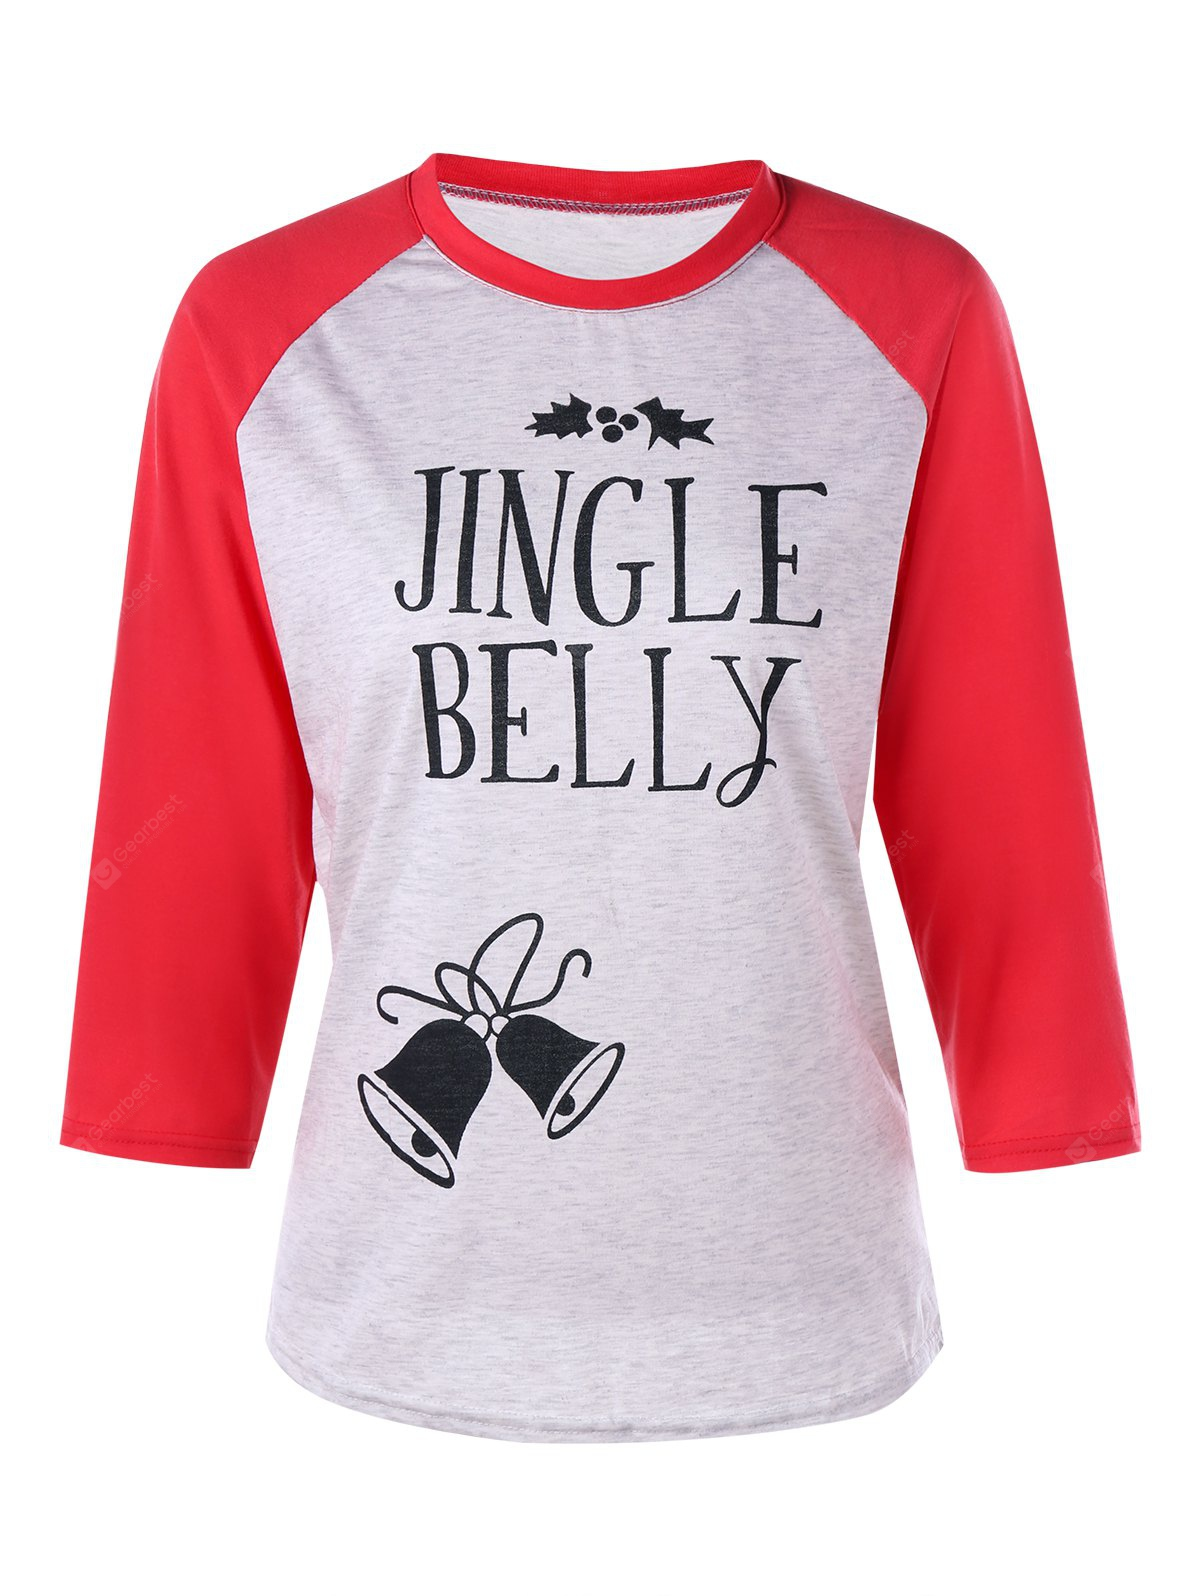 Weihnachts Jingle Belly Print Raglan Ärmel T-Shirt